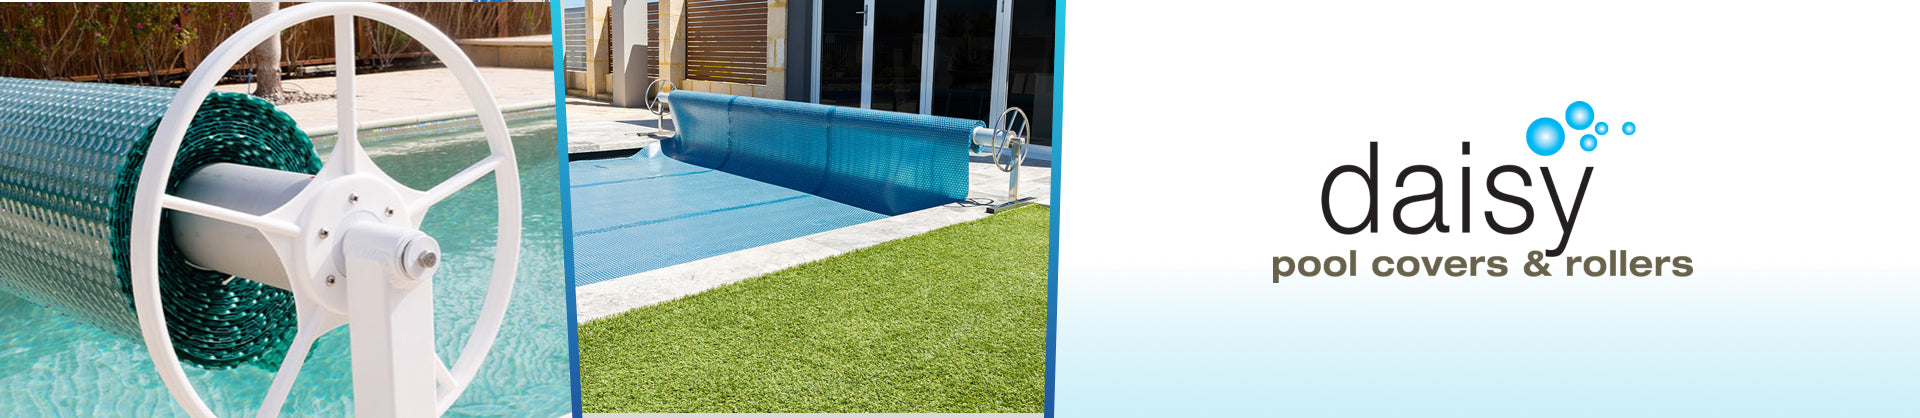 Daisy Covers - Pool Covers, Blankets & Rollers - Mr Pool Man